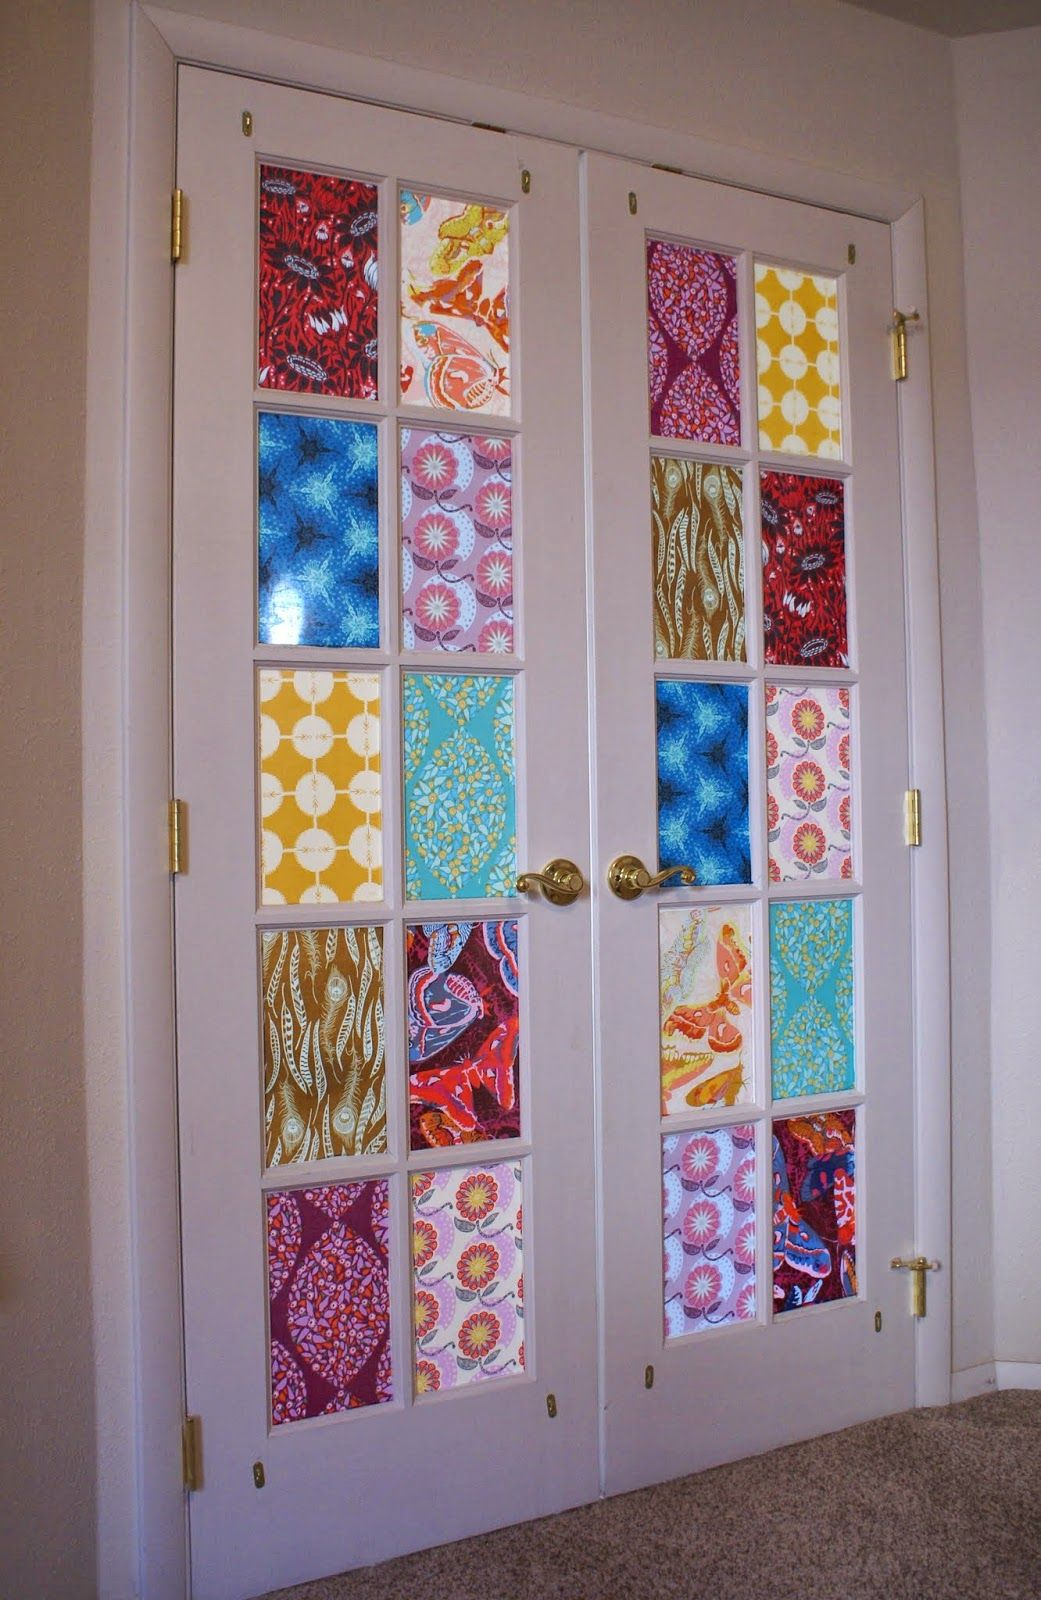 Cover French Door Windows With Fabric For A Stained Glass Effect...love It Part 82